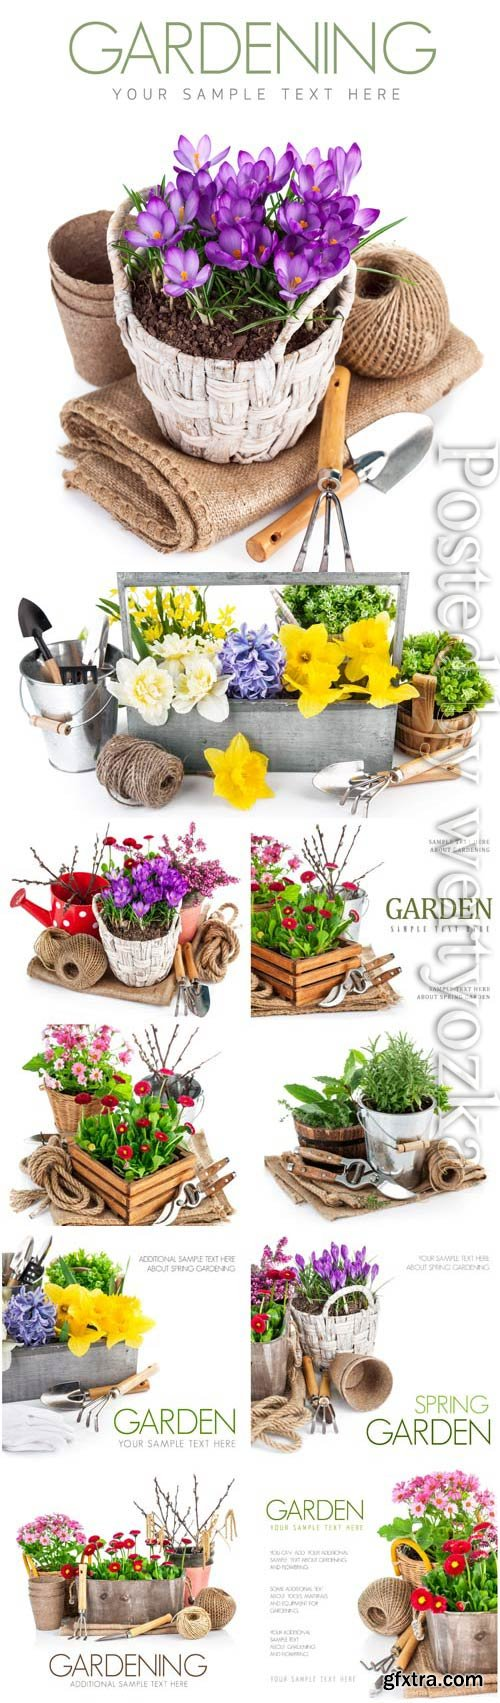 Gardening flowers and plants stock photo